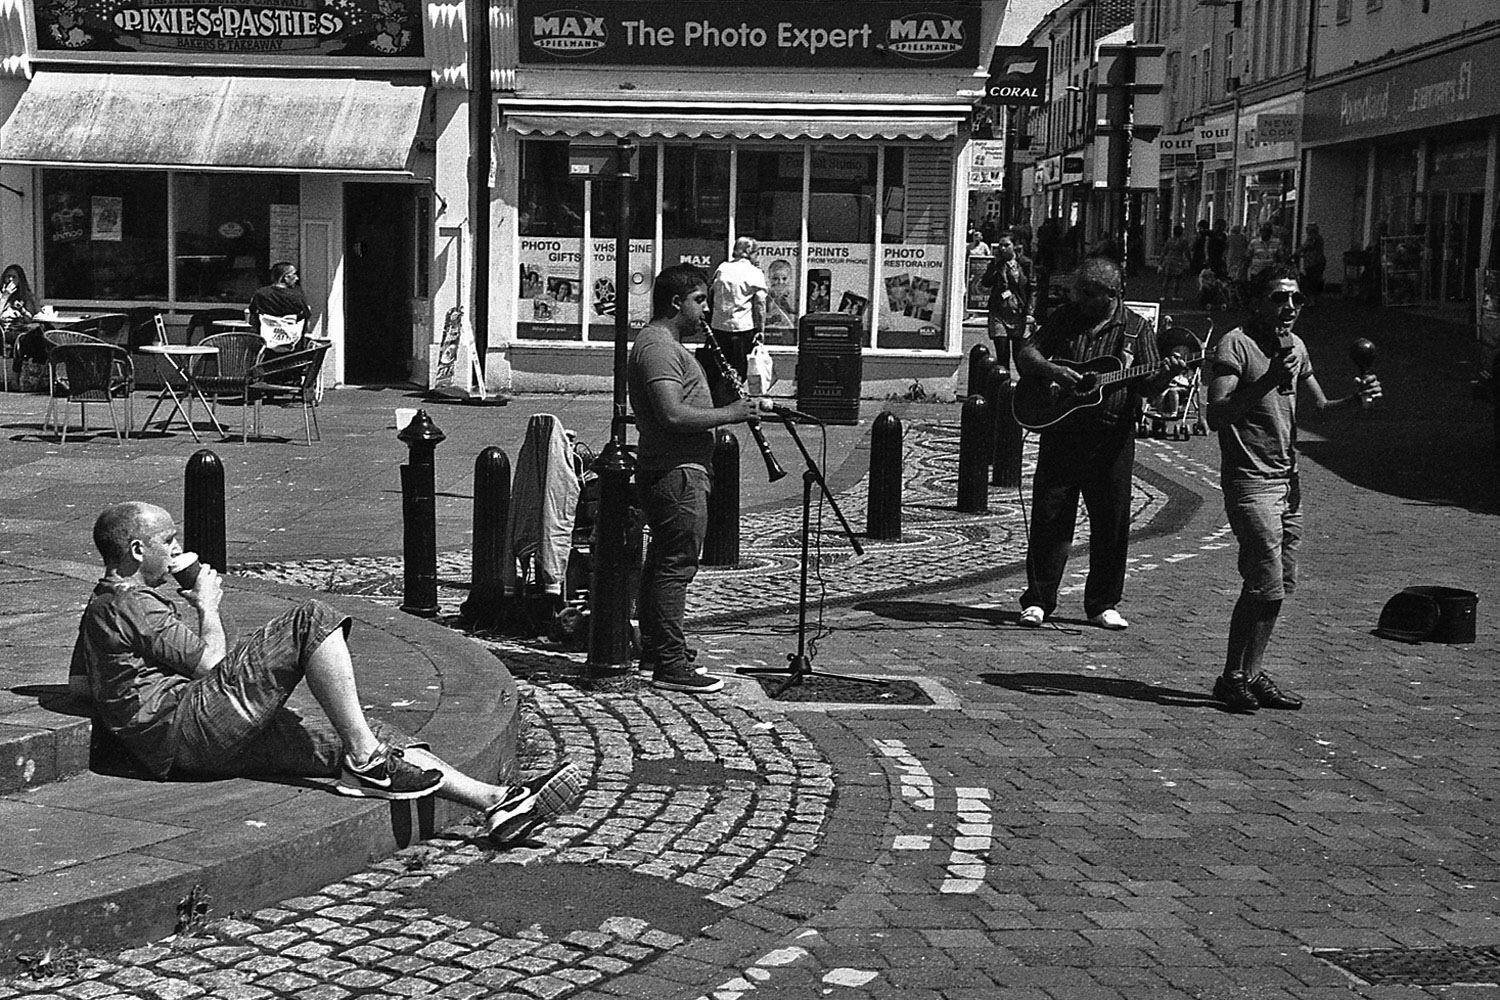 musicians and relaxing with coffee whitehaven street photography uk photographer kevin shelley prints for sale leica m2 jupiter 8 50 f2